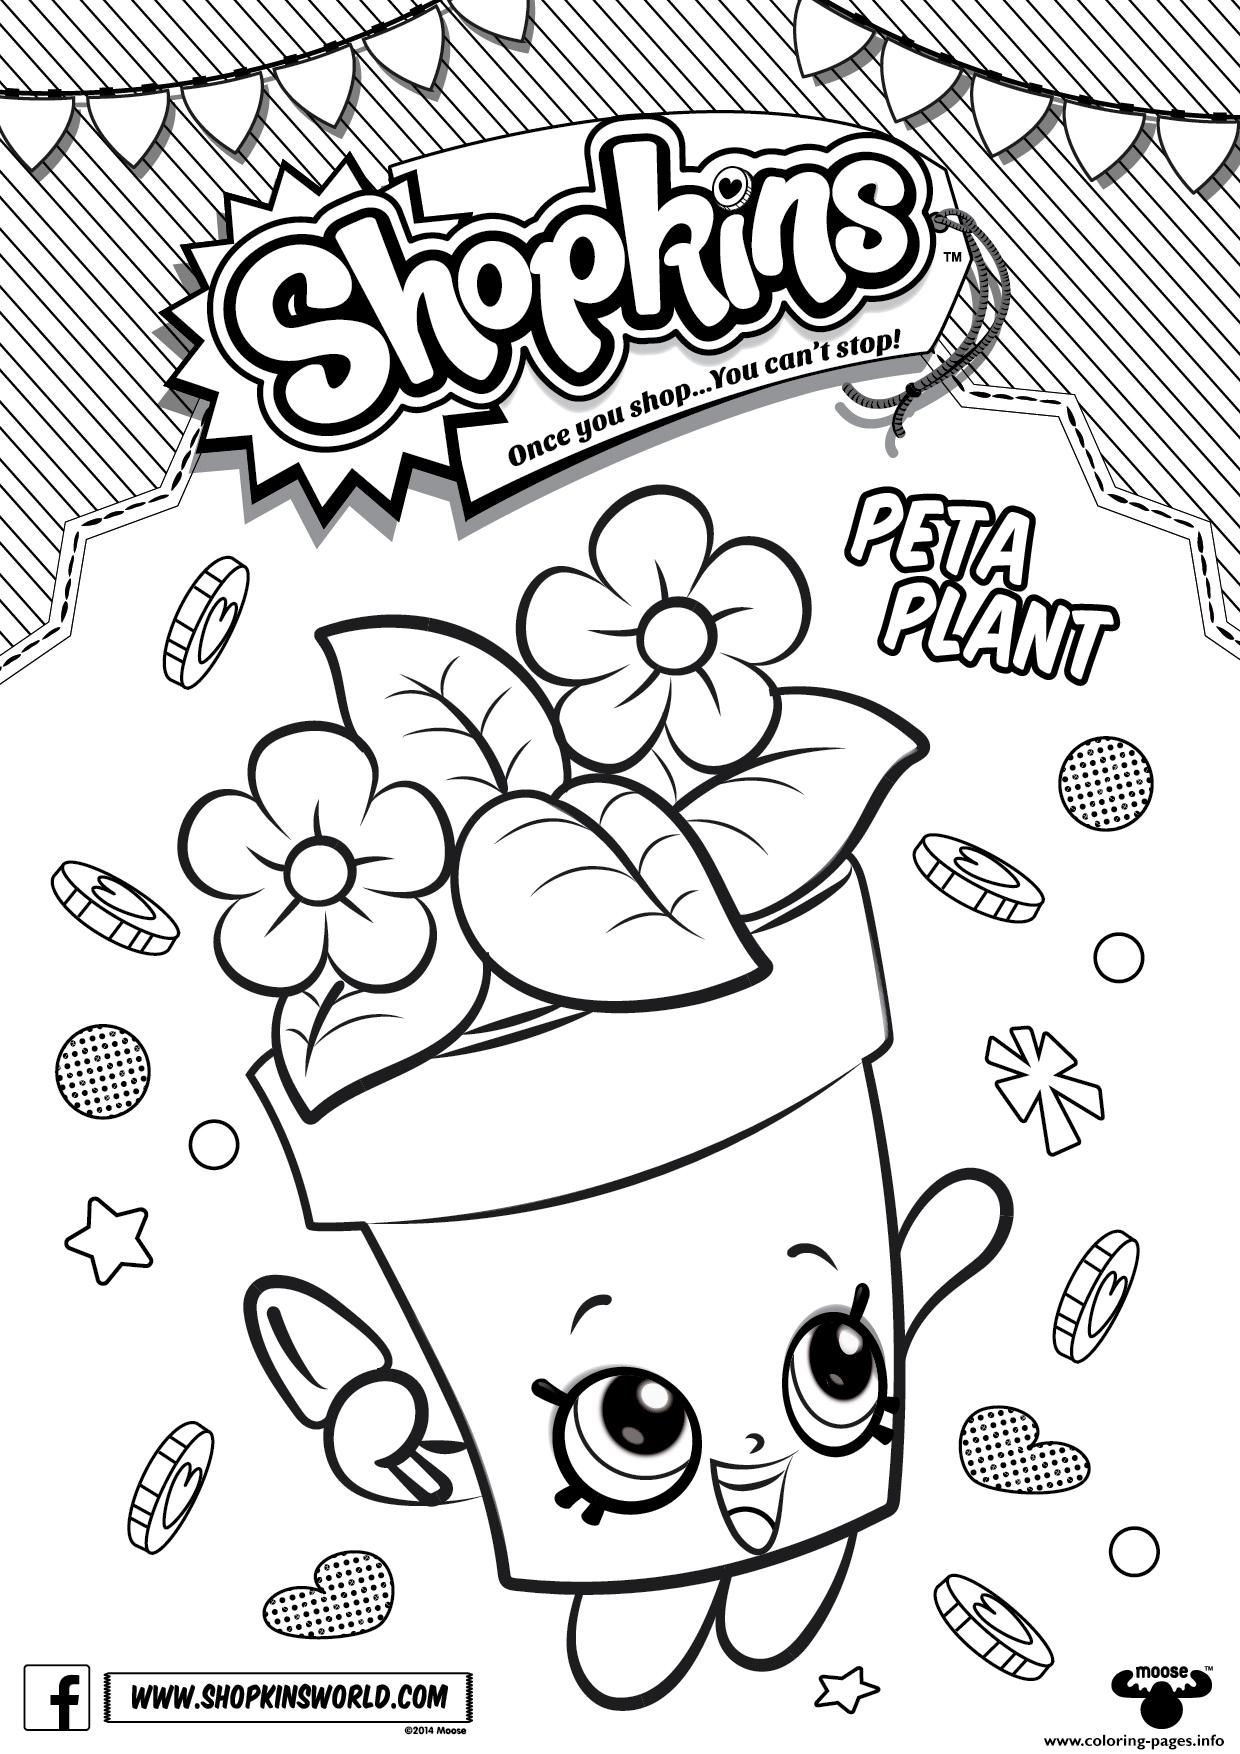 print shopkins peta plant coloring pages colouring pages